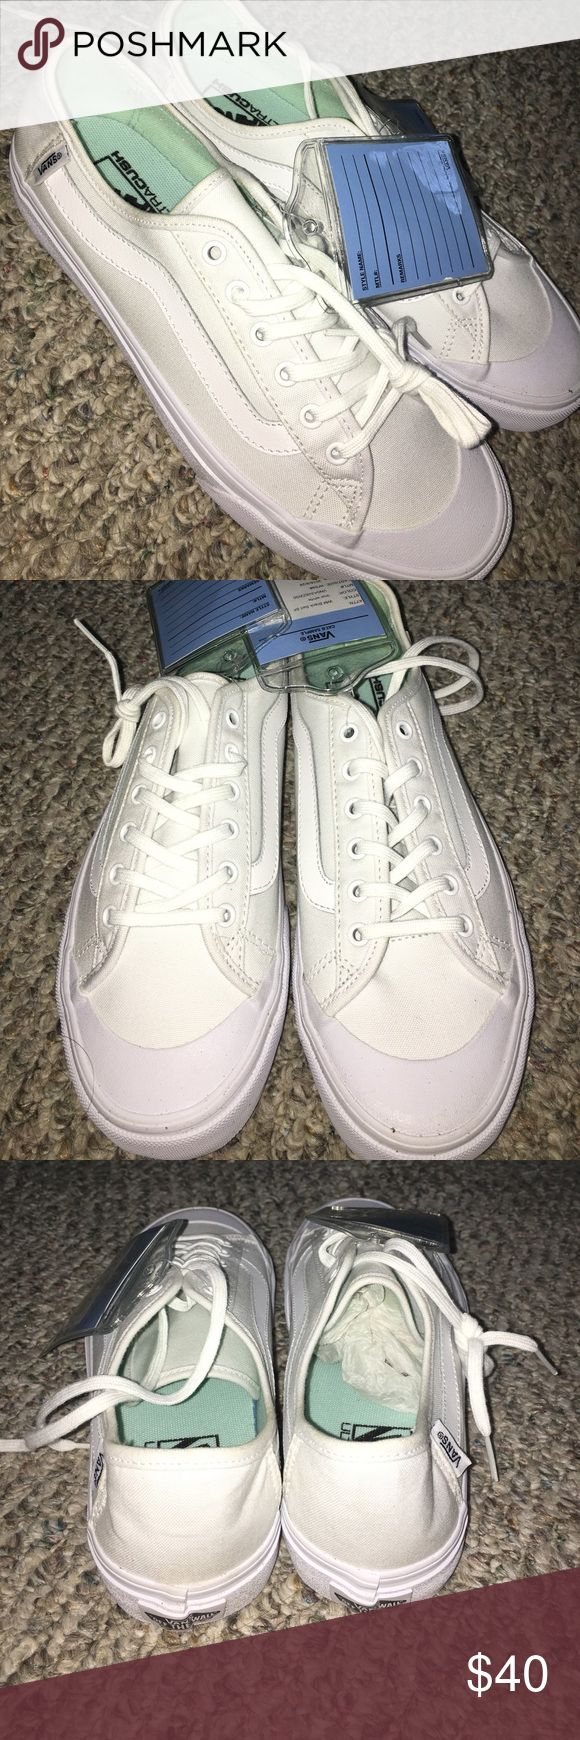 Classic white sk8 low Vans I have these BRAND NEW white vans that still have the tags on them. Never been worn. Also they are a size women's 9. Shoes Sneakers